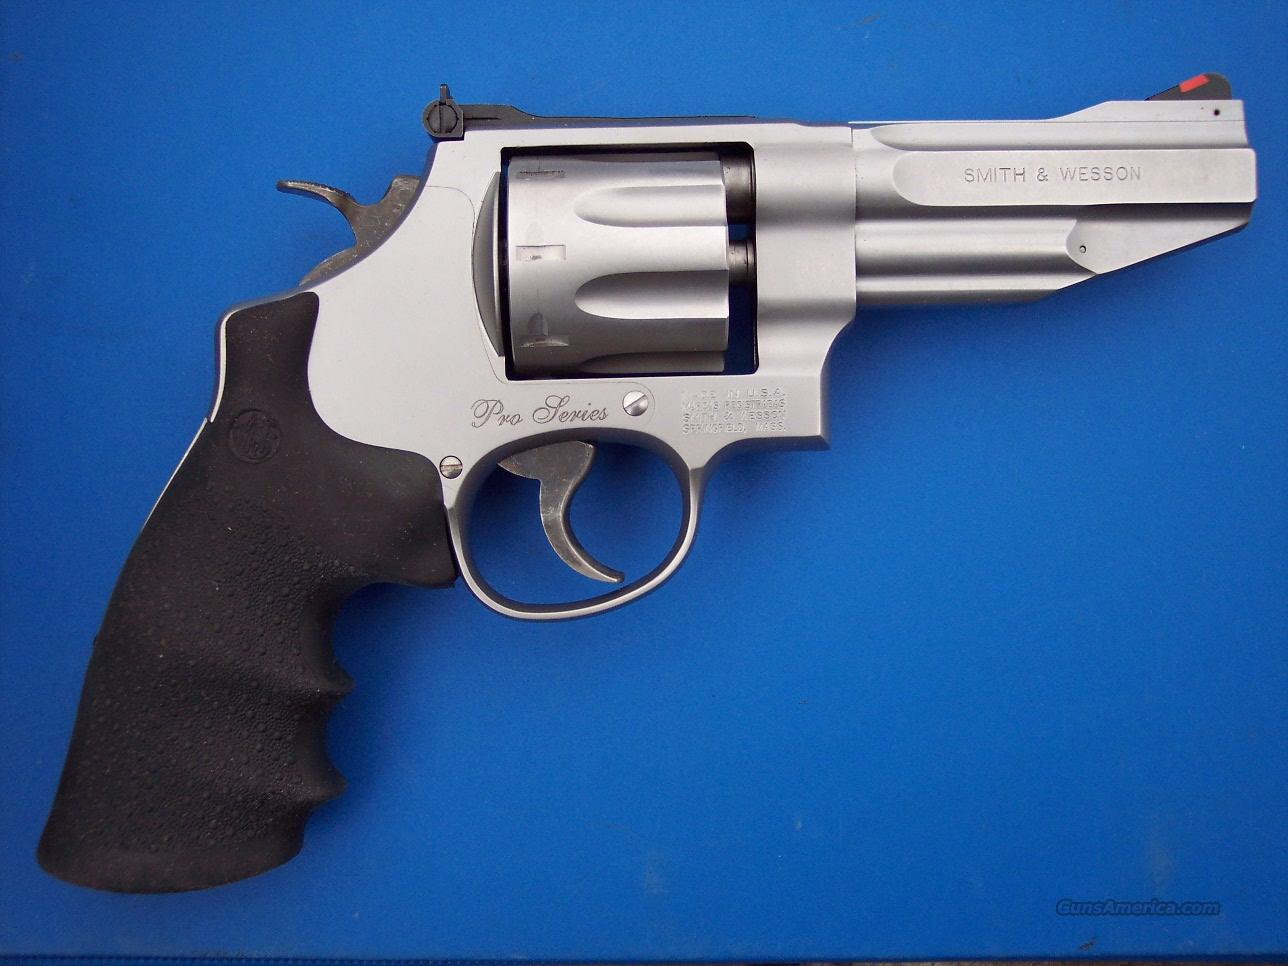 Smith & Wesson 627 Pro Series 8 shot 357 NEW  Guns > Pistols > Smith & Wesson Revolvers > Full Frame Revolver